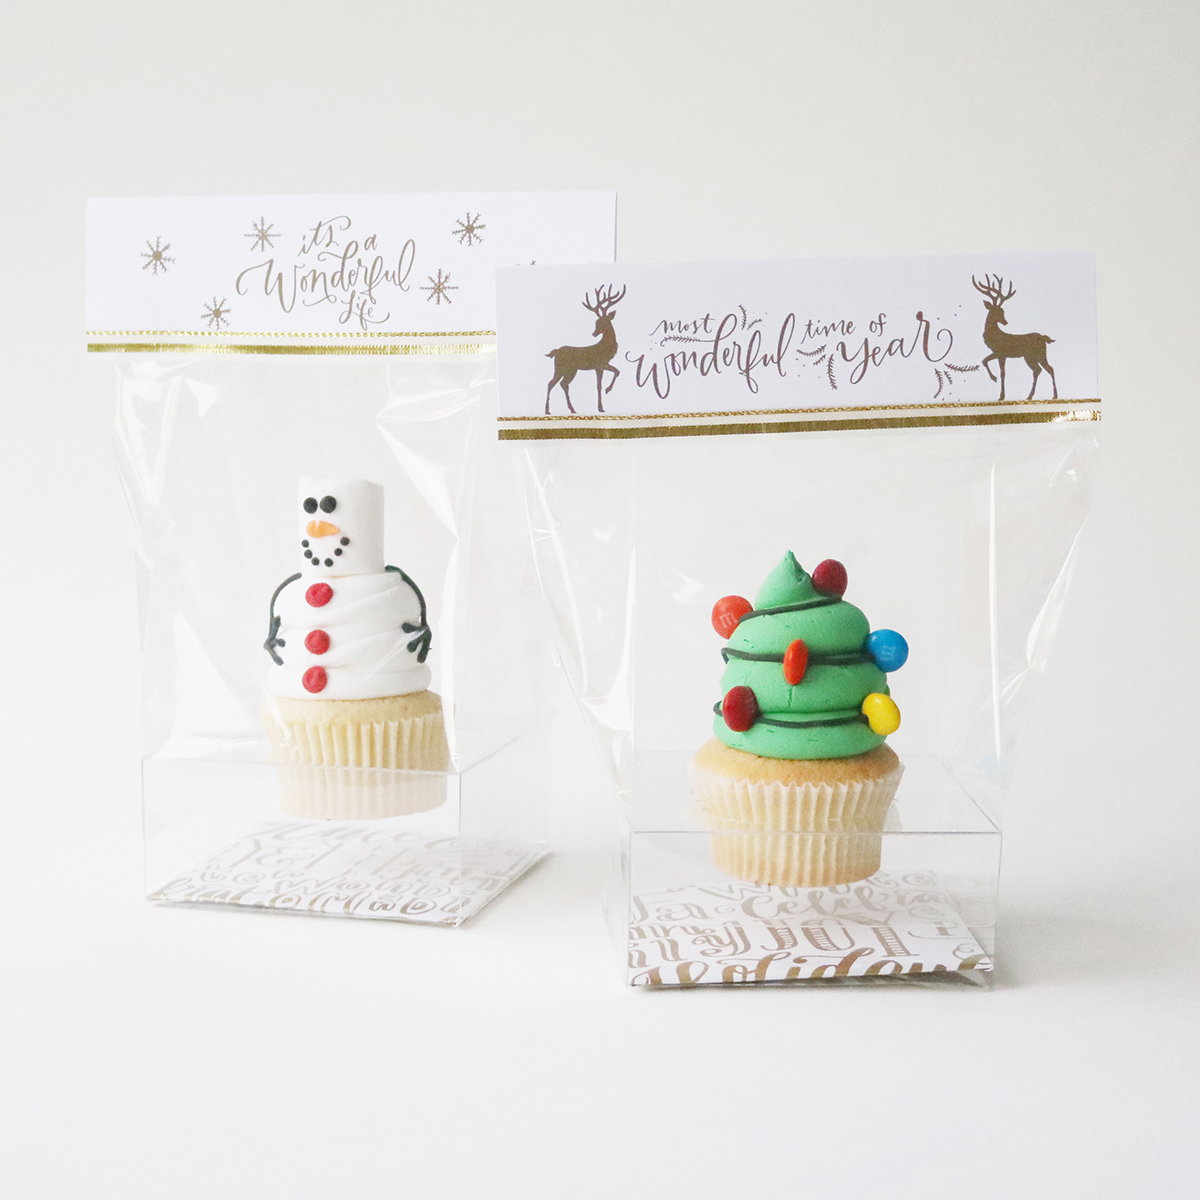 Snowman and Christmas tree cupcakes packaged for gift giving - free download for the gift topper printables | Creative Bag and Bake Sale Toronto